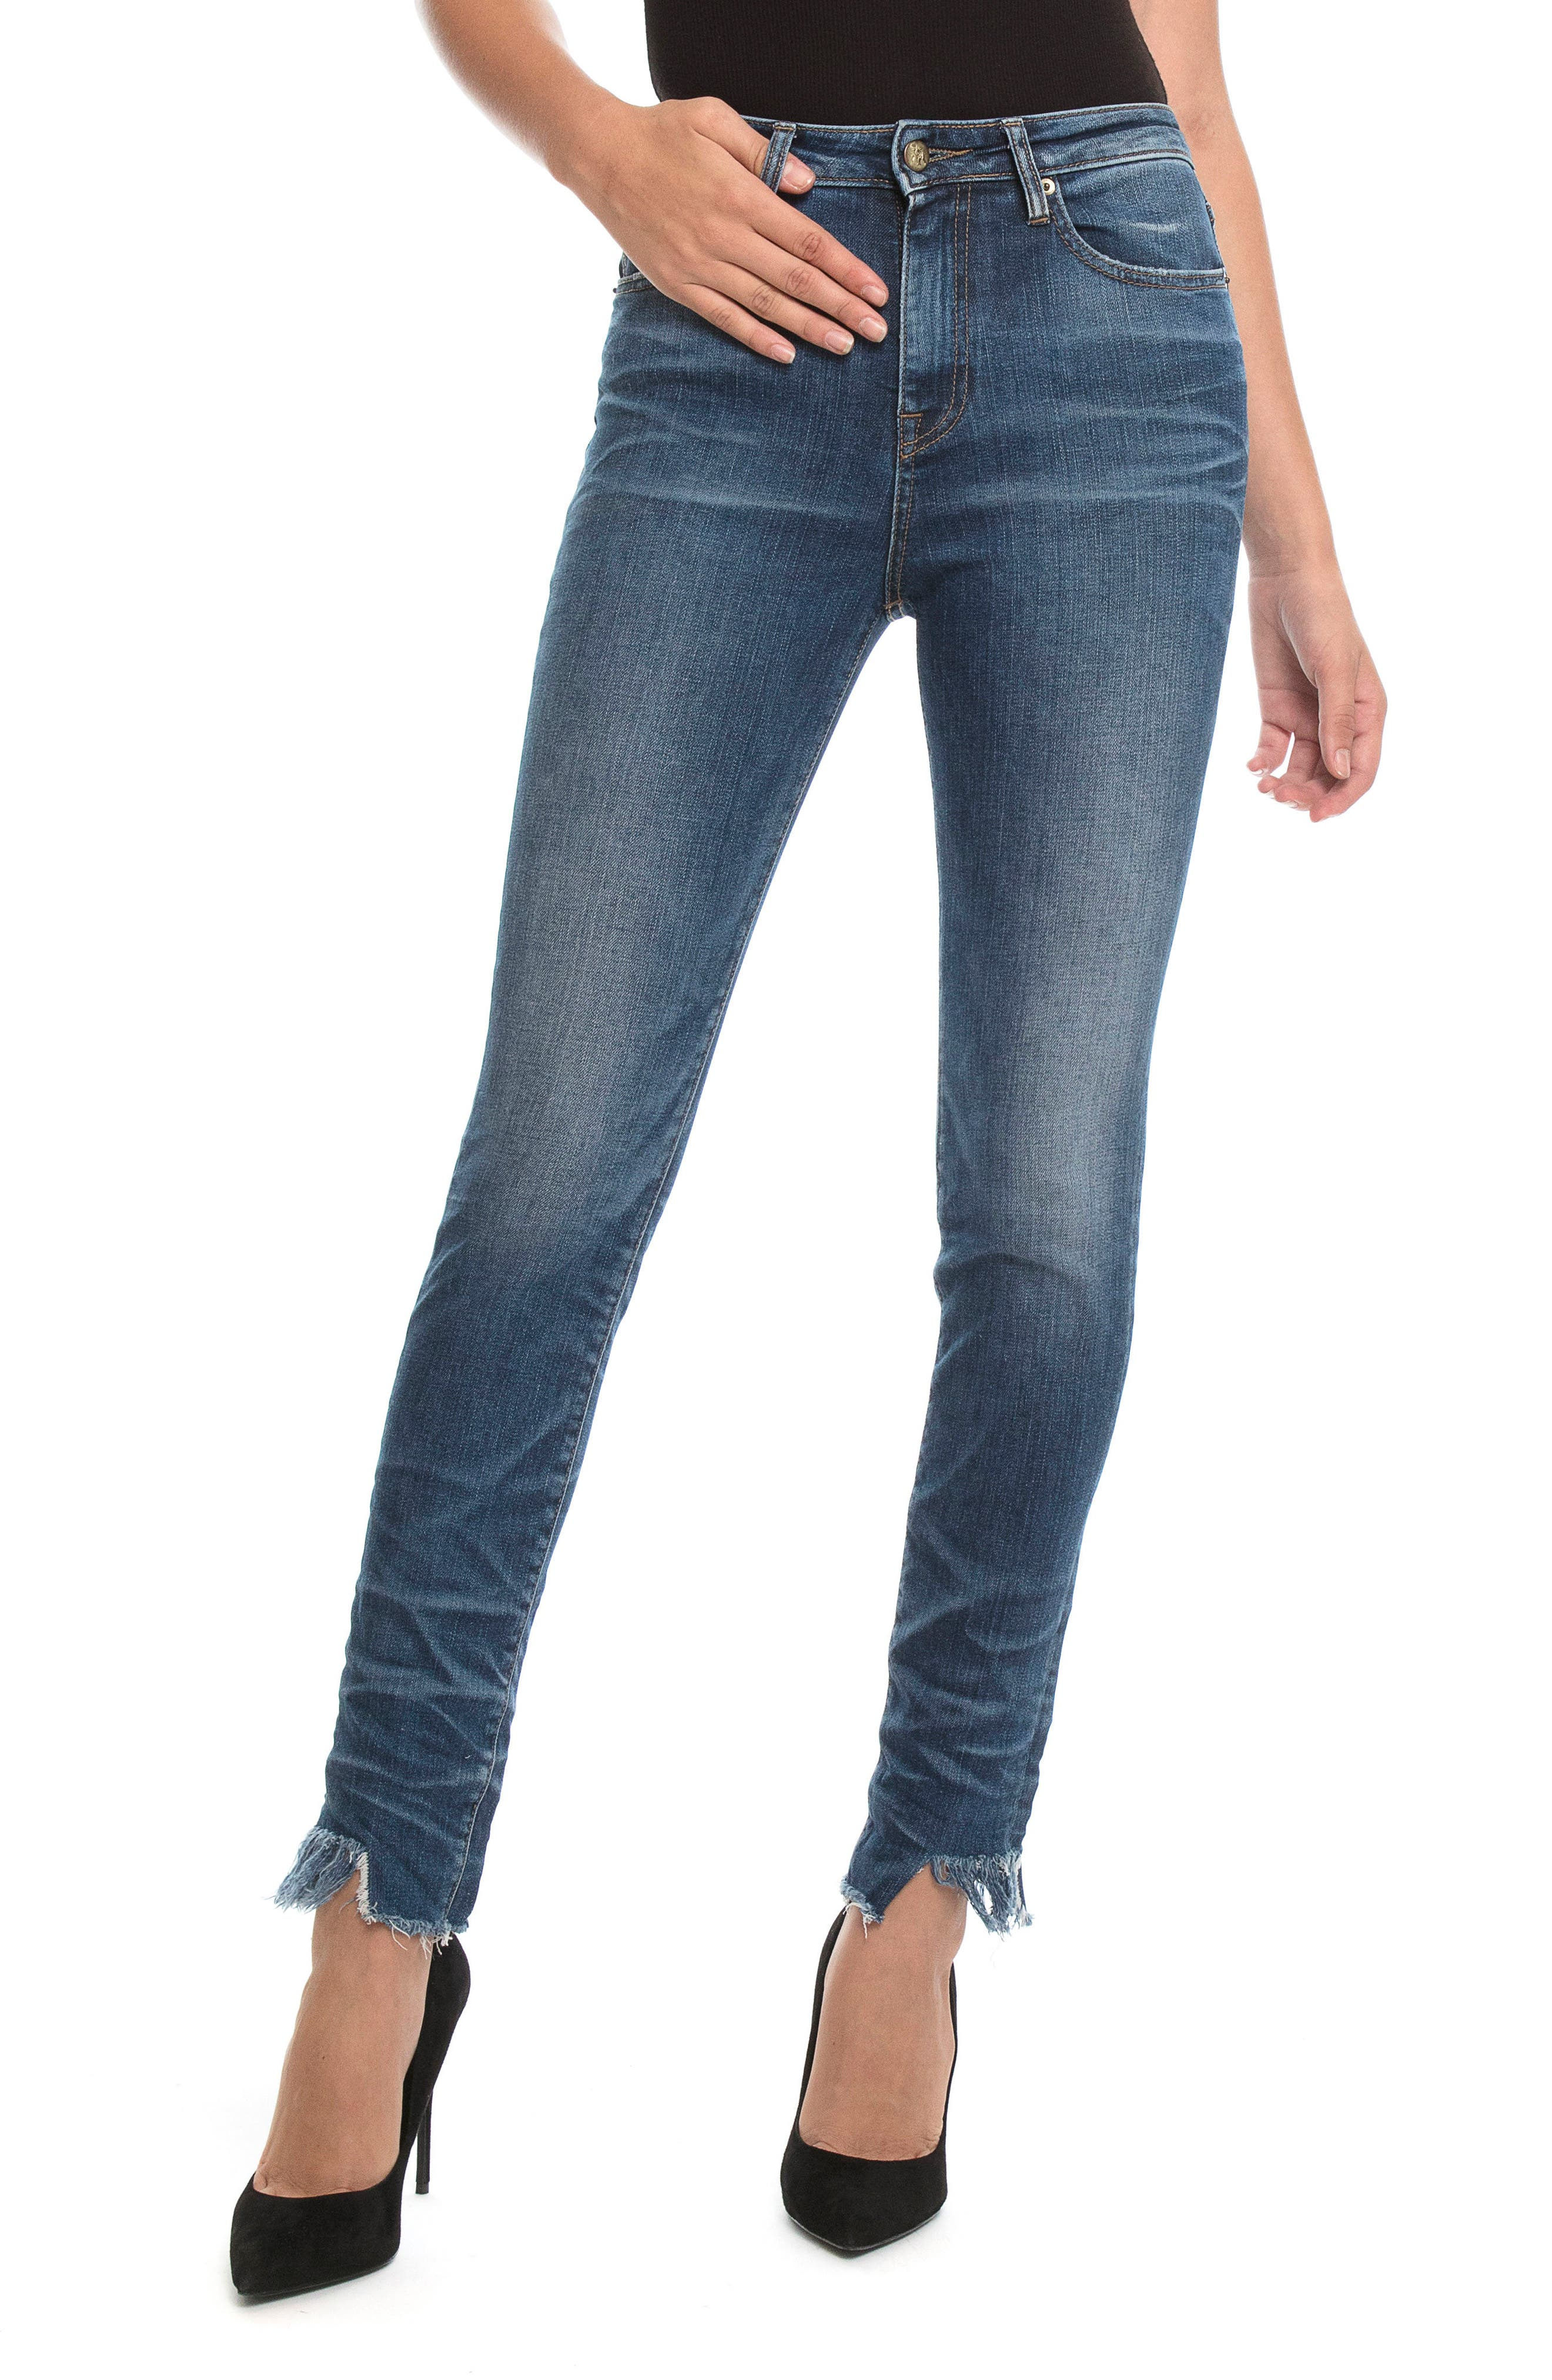 Camaro Ankle Skinny Jeans,                             Main thumbnail 1, color,                             VINTAGE